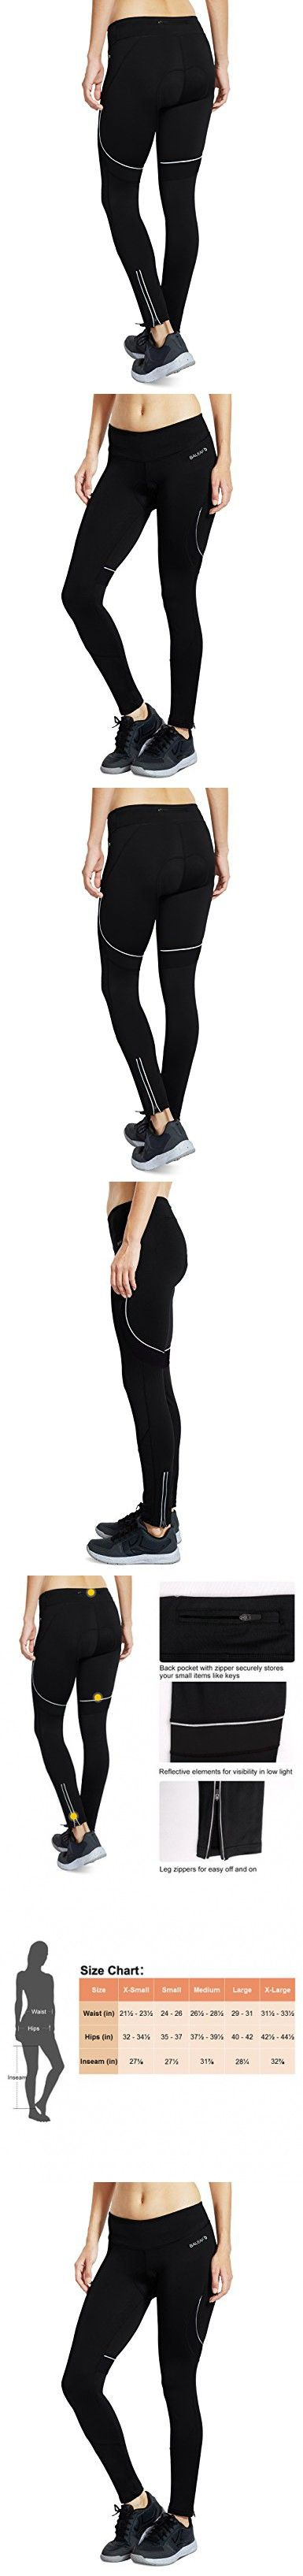 Baleaf Women's 3D Padded Cycling Tights Pants Wide Waistband Black Size L